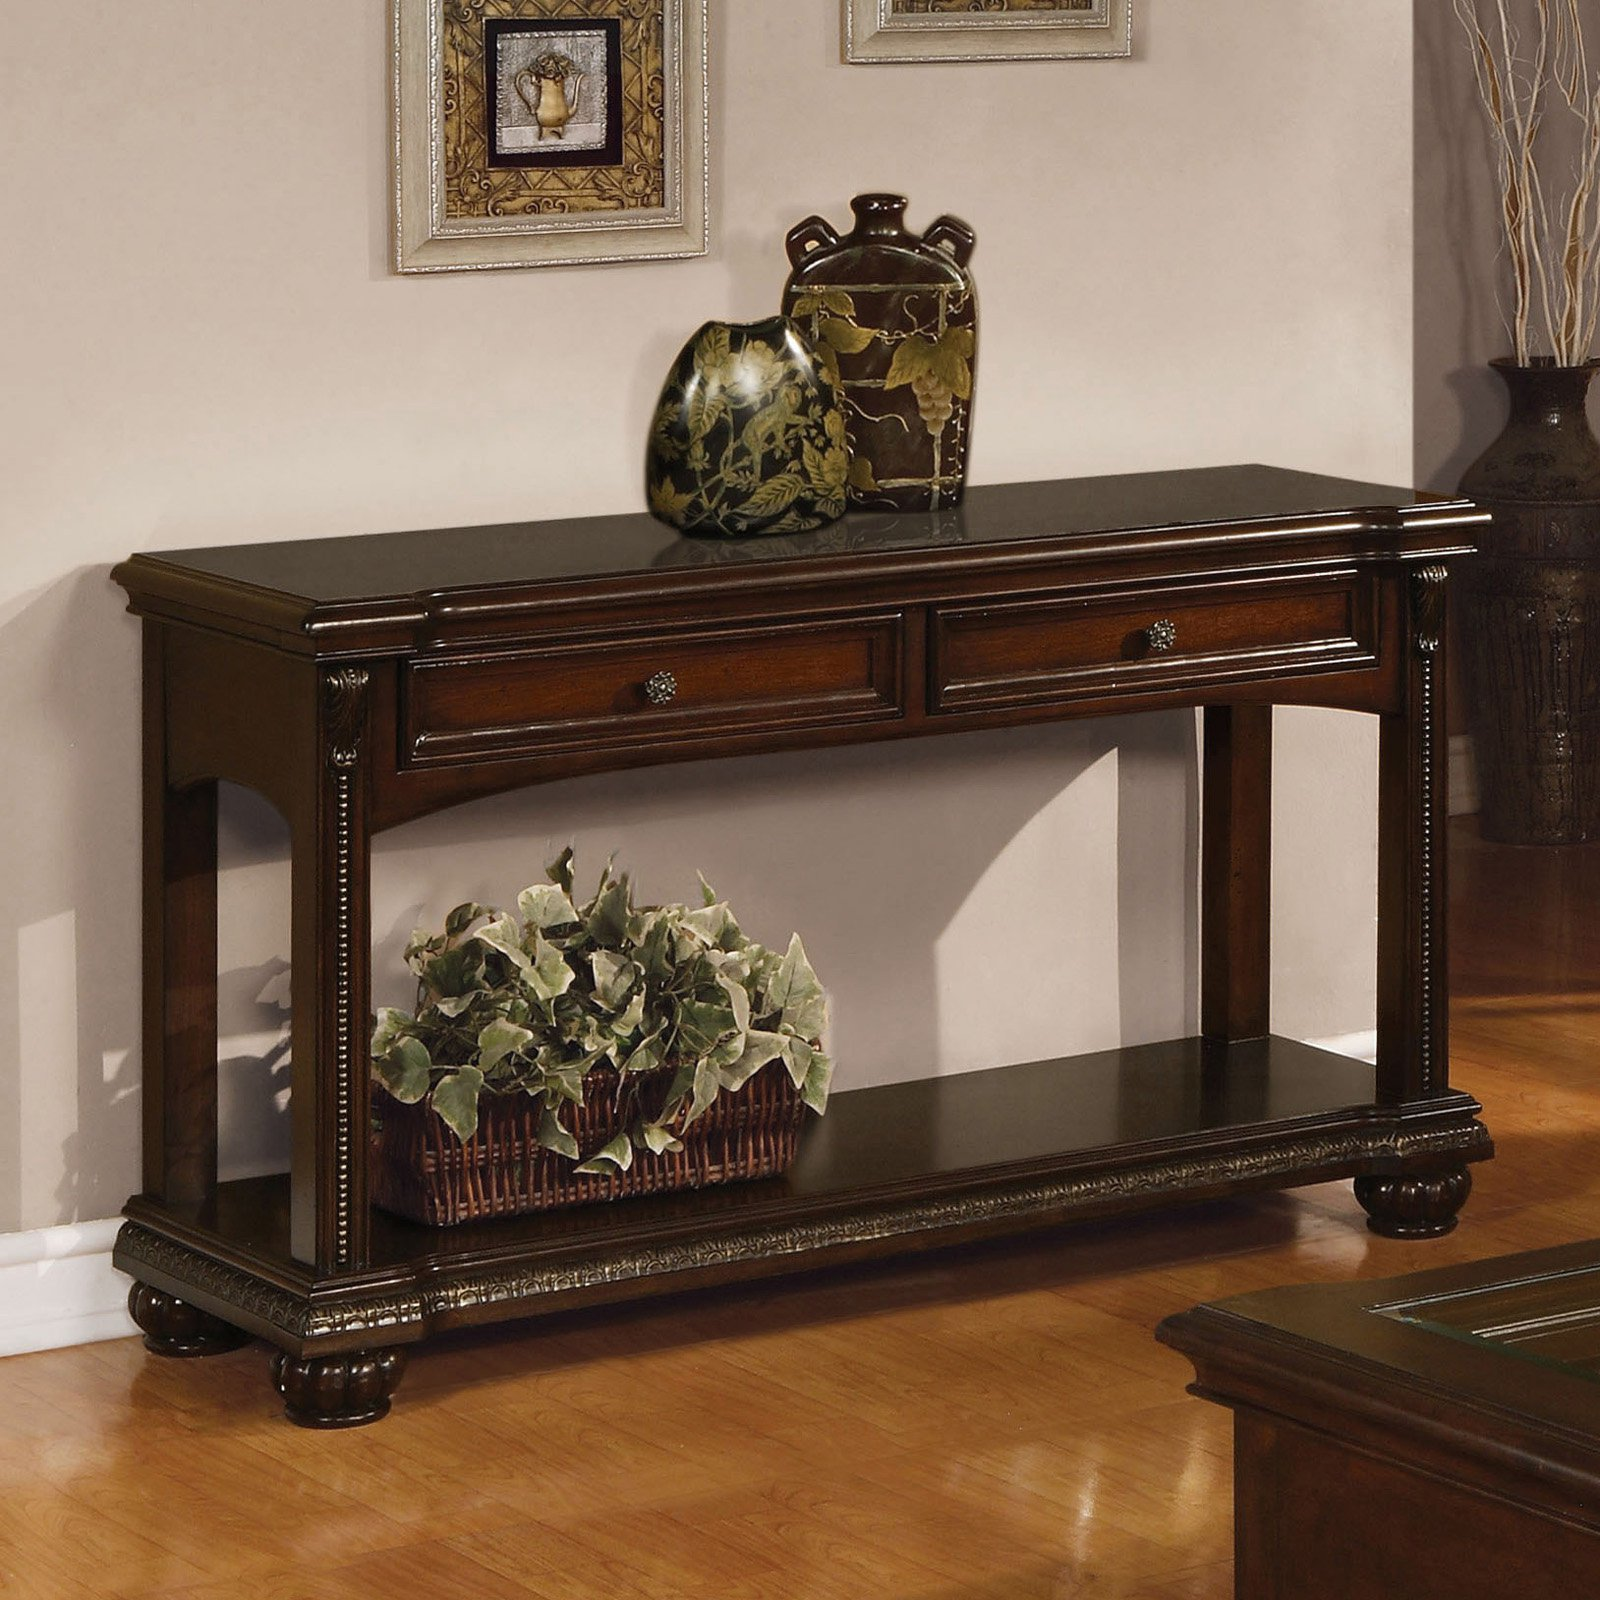 Acme Furniture Anondale Sofa Table Entry Console Table Wooden Frame Sofa Sofa Table